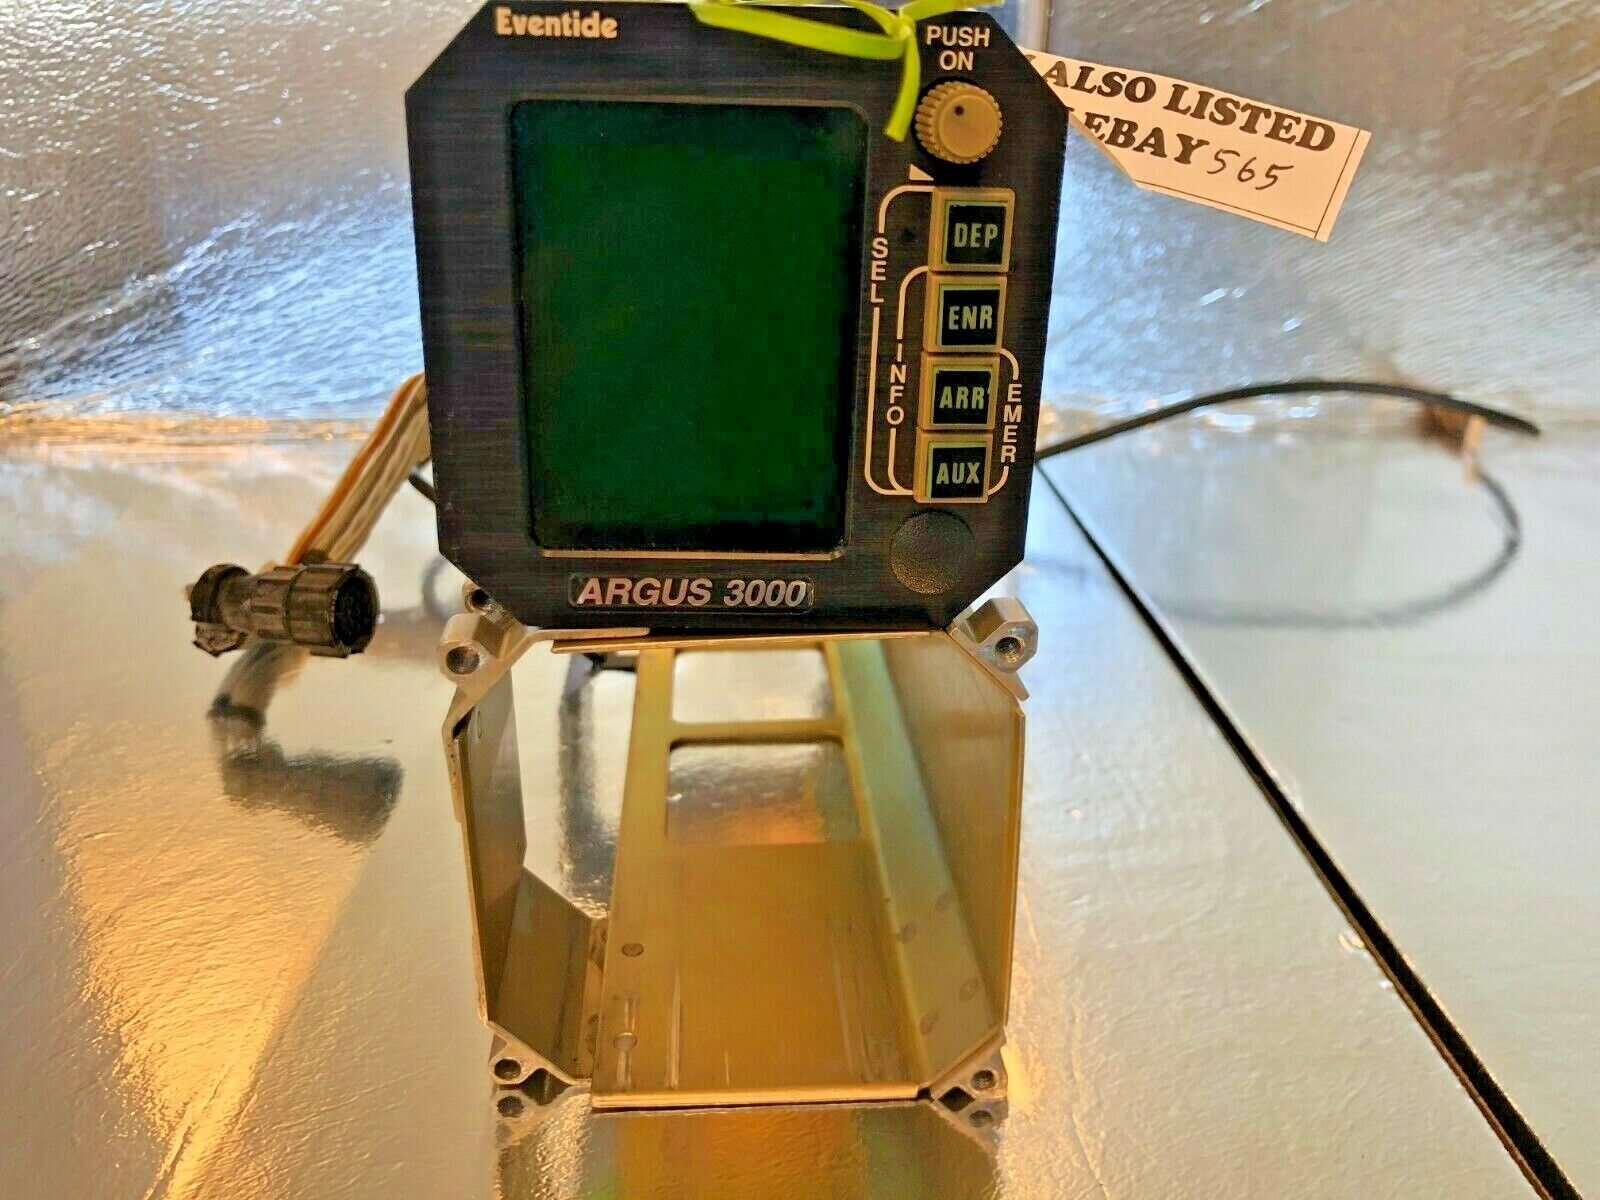 Eventide Argus 3000-00-00 11-33V Mod 1,2,3,5,6,8 Tray and Back Plate